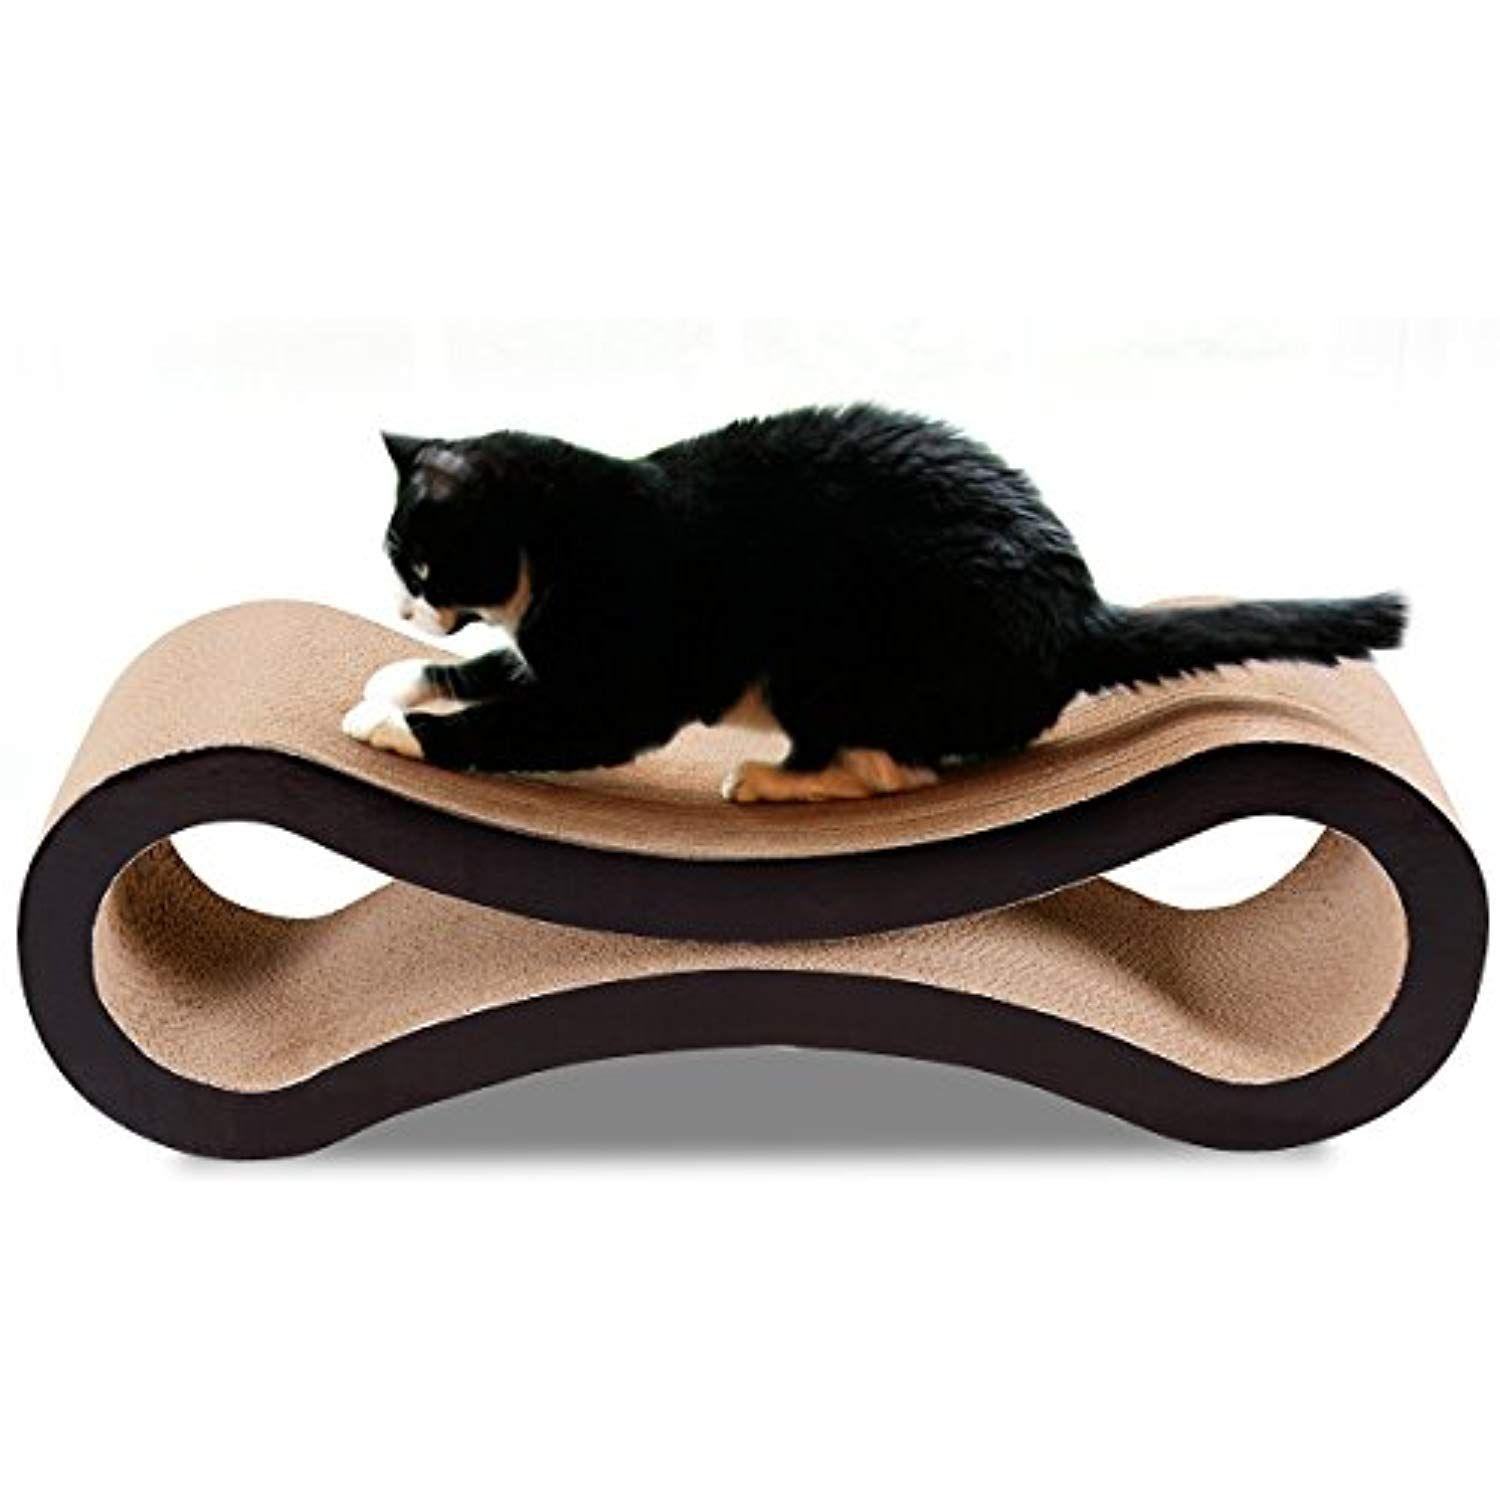 Giantex Pet Ultimate Kitten Toy Cat Scratcher Lounge Pad Scratching Board Post Claw You Can Find Out Mo Cardboard Cat Scratcher Cat Scratcher Pet Scratcher